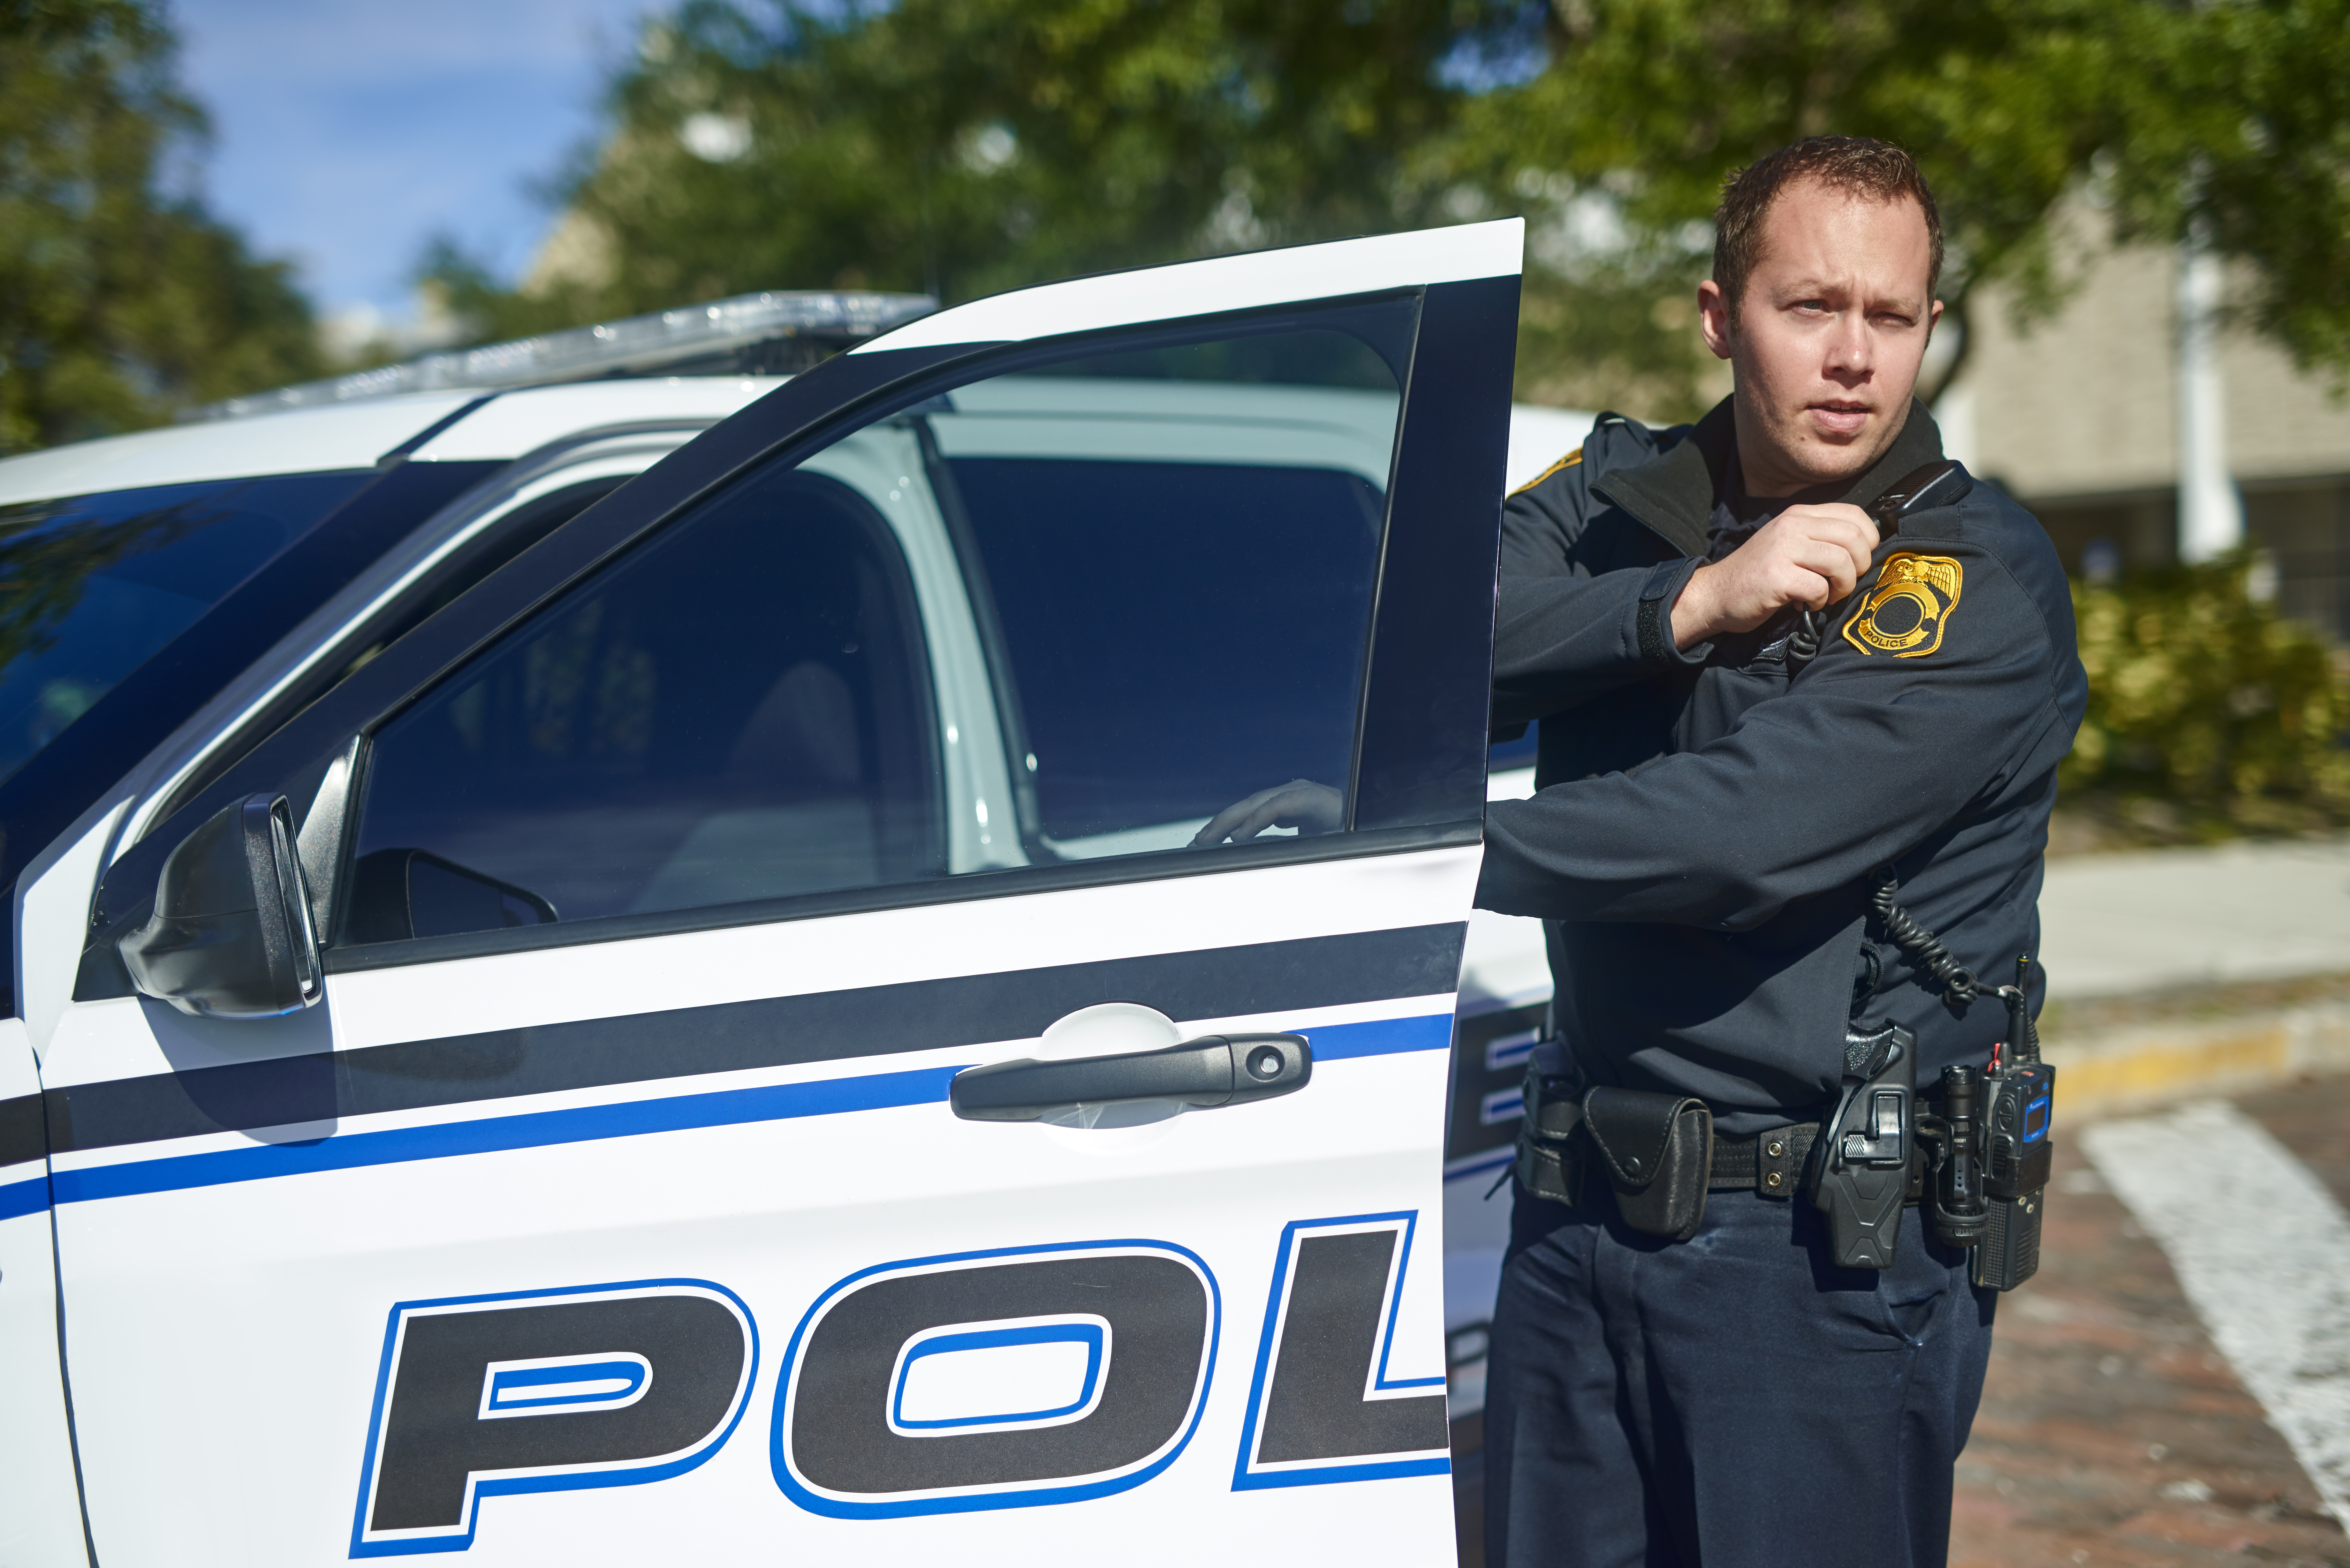 How to Become a Police Officer Without a College Education